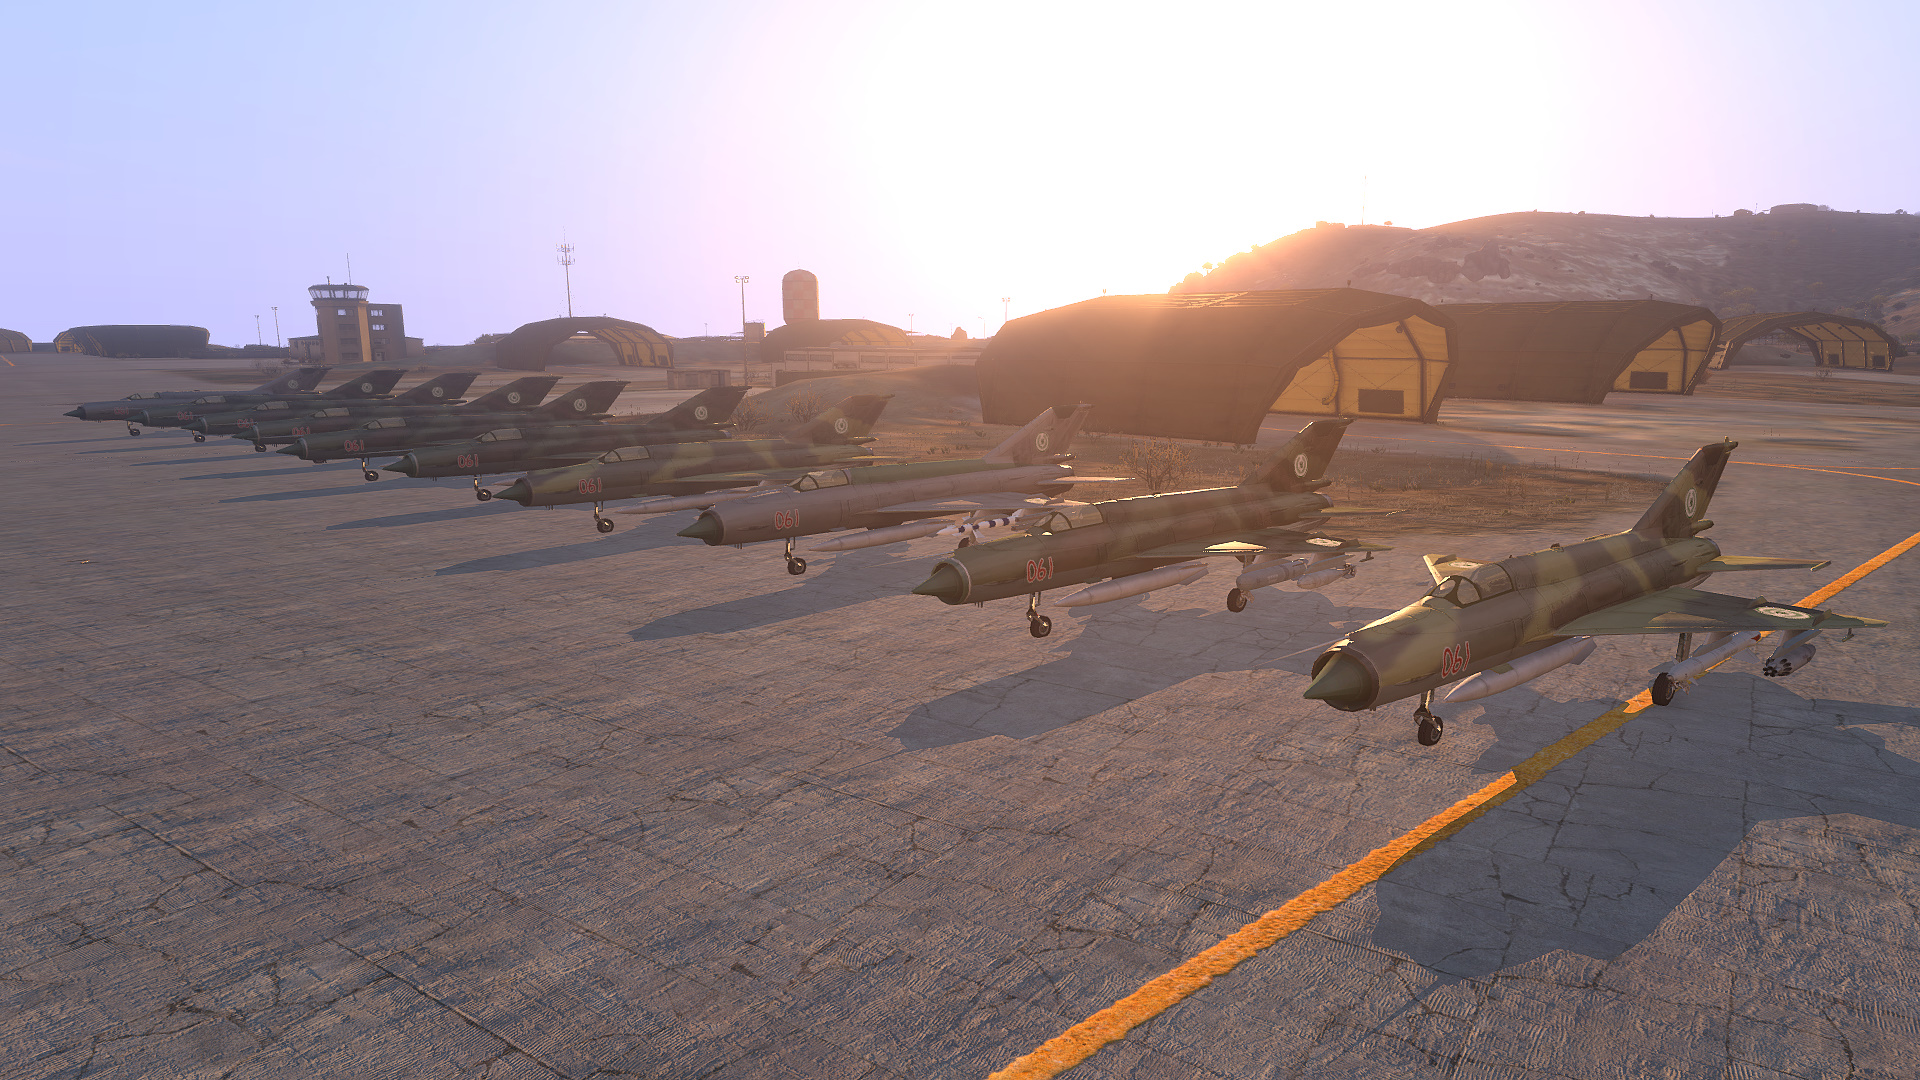 Mig21s lined up ready for action